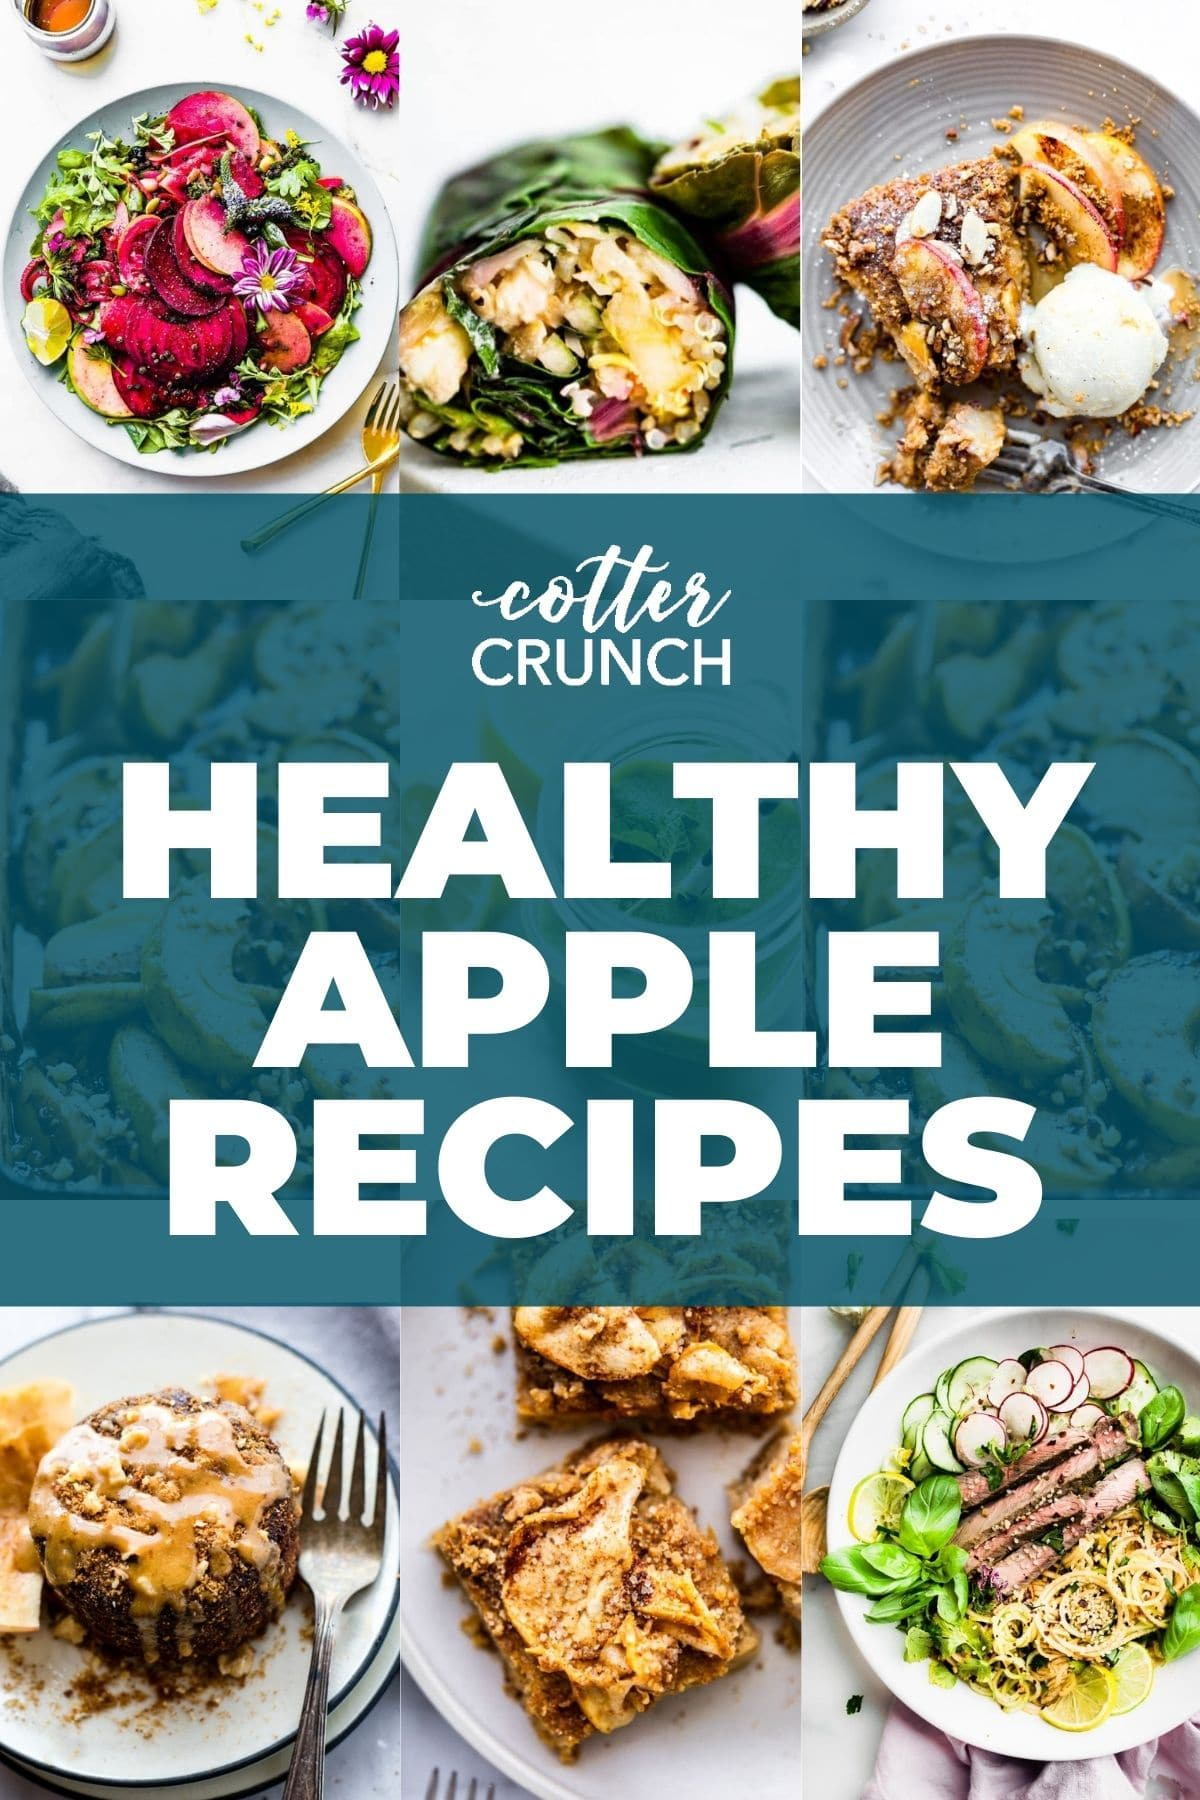 Grid images of healthy apple recipes to make